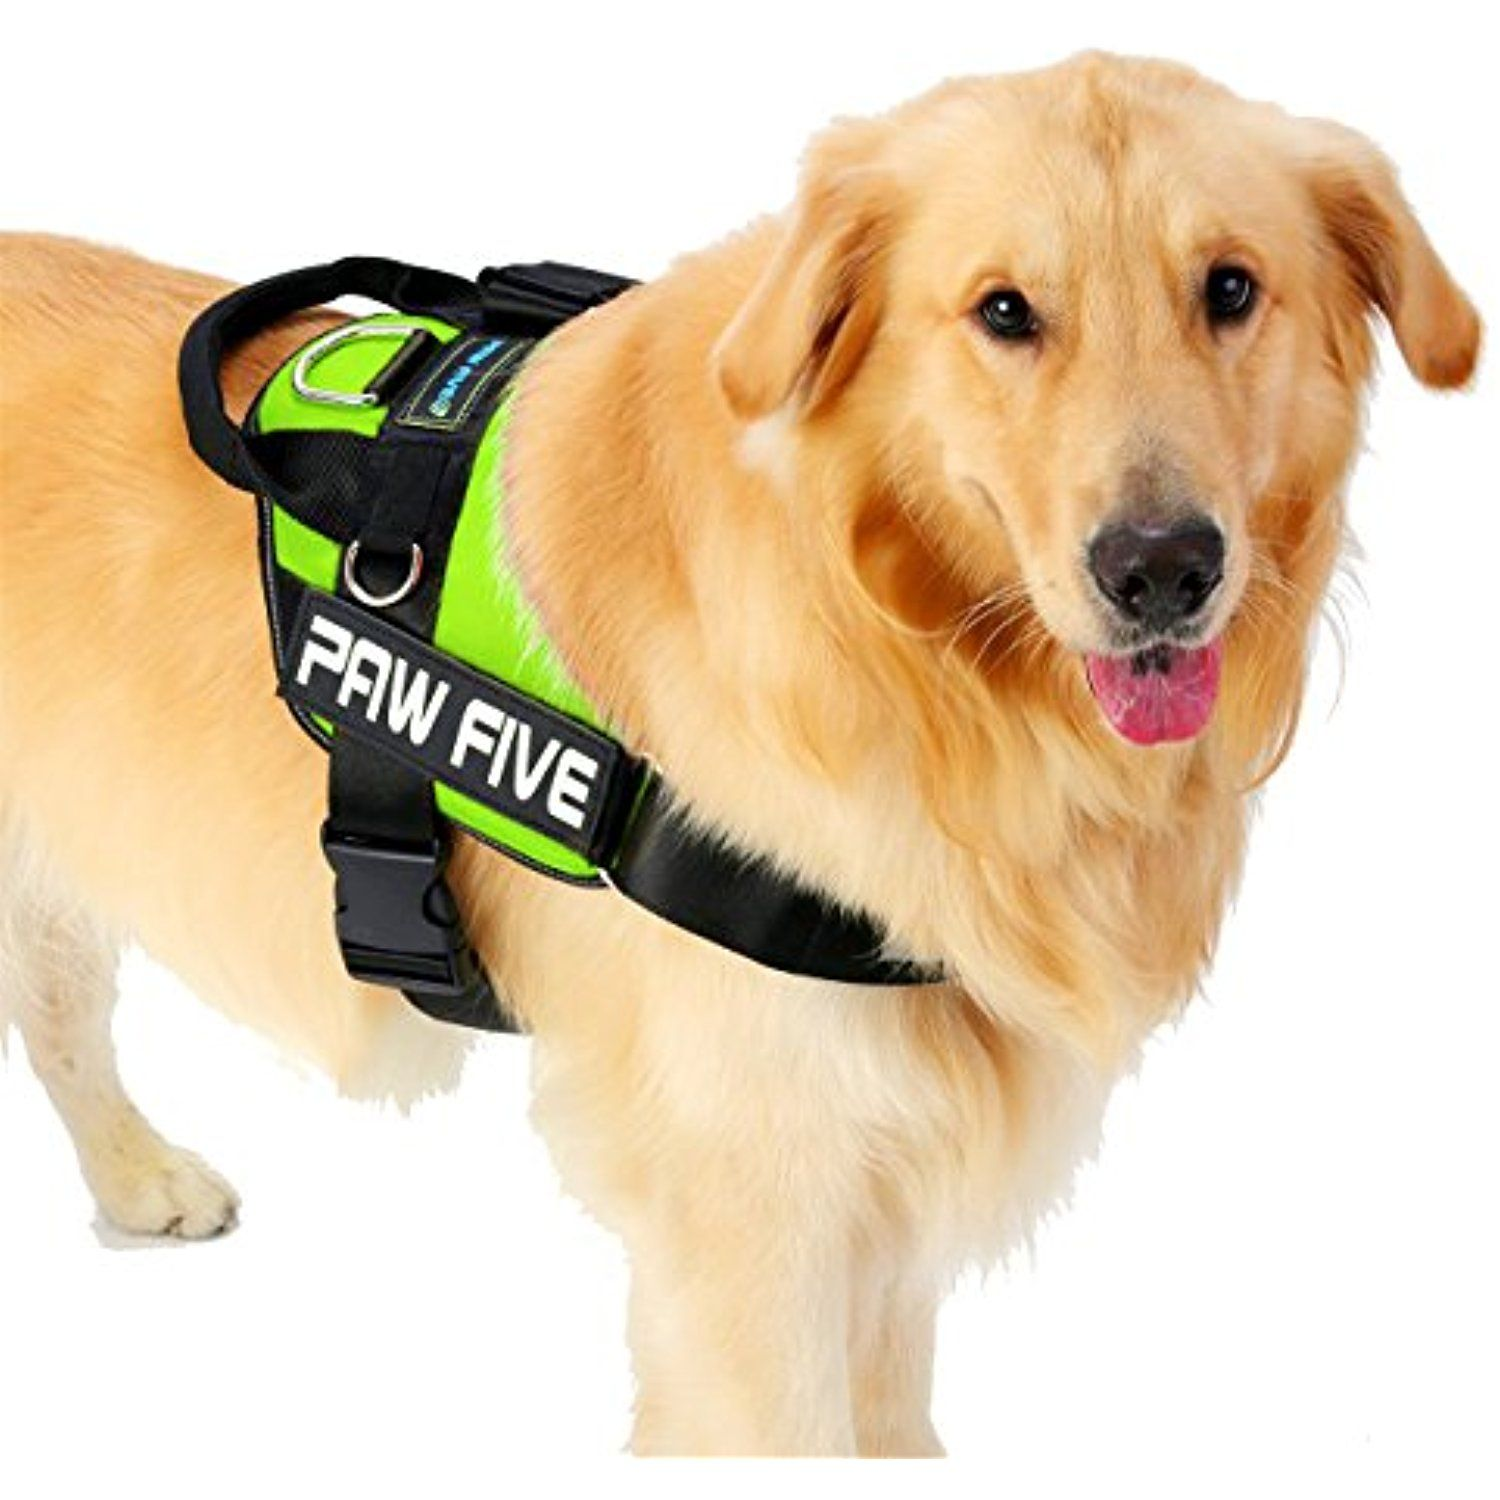 Paw Five Core 1 Reflective Dog Harness With Built In Waste Bag